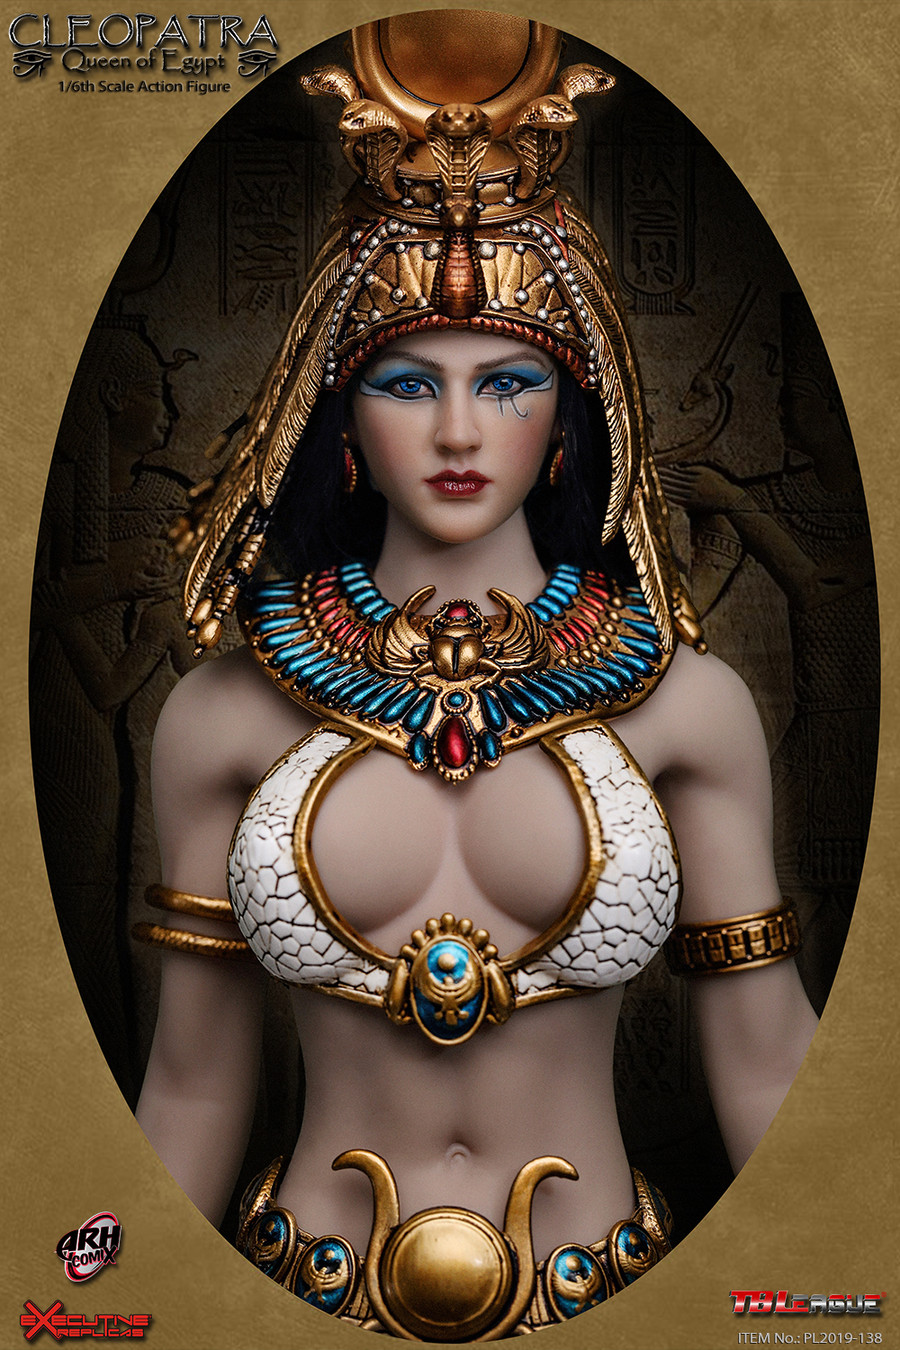 TBLeague - Cleopatra Queen of Egypt